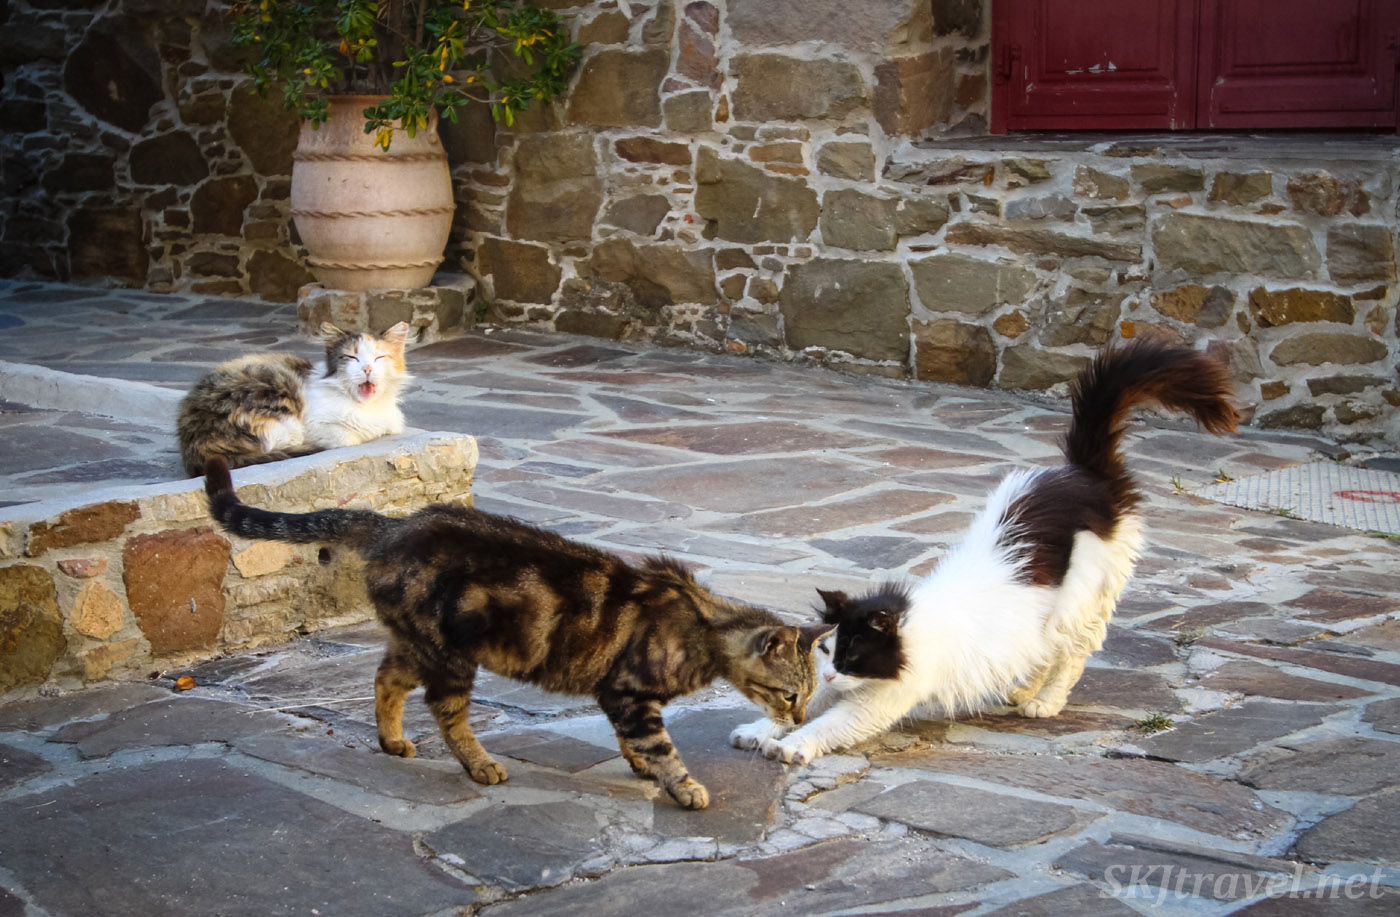 Cats playing in the cobblestone street of Volissos, Chios Island, Greece.